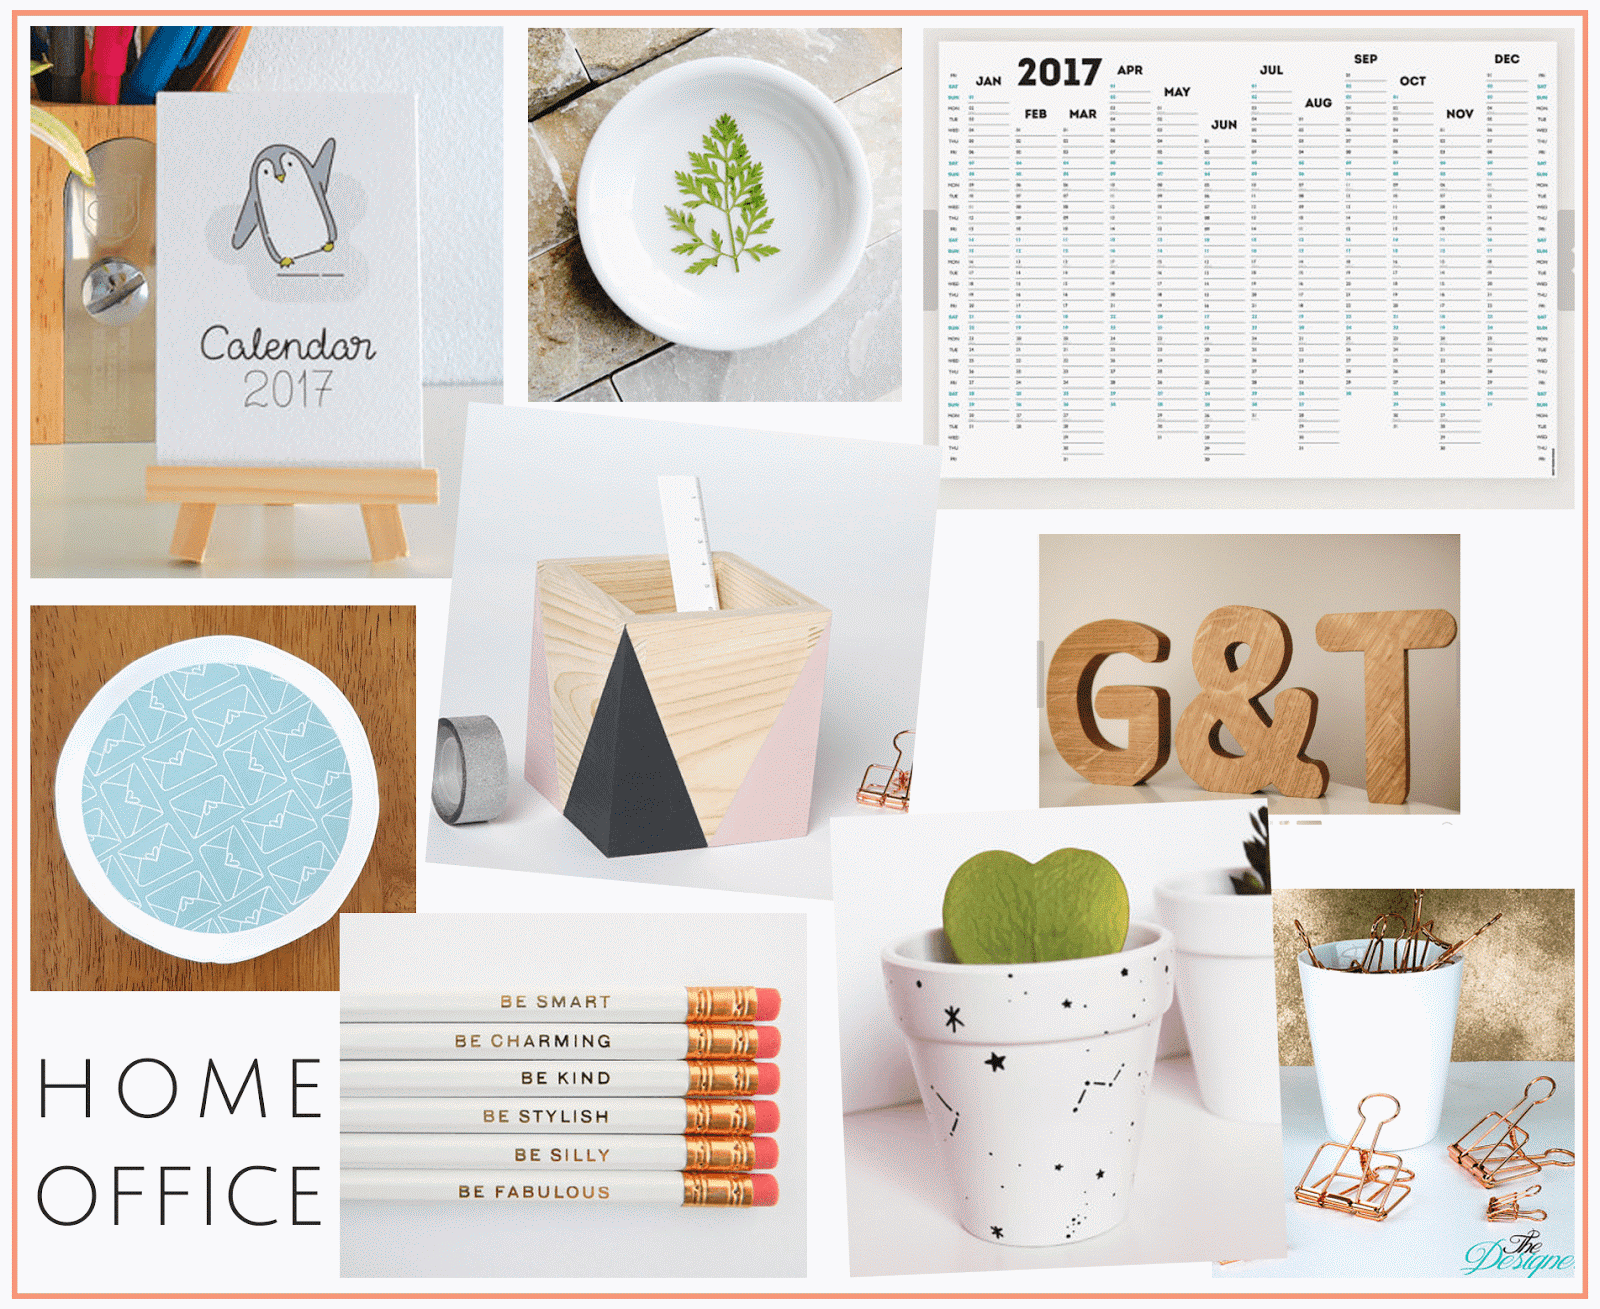 organisation gift guide from small businesses etsy